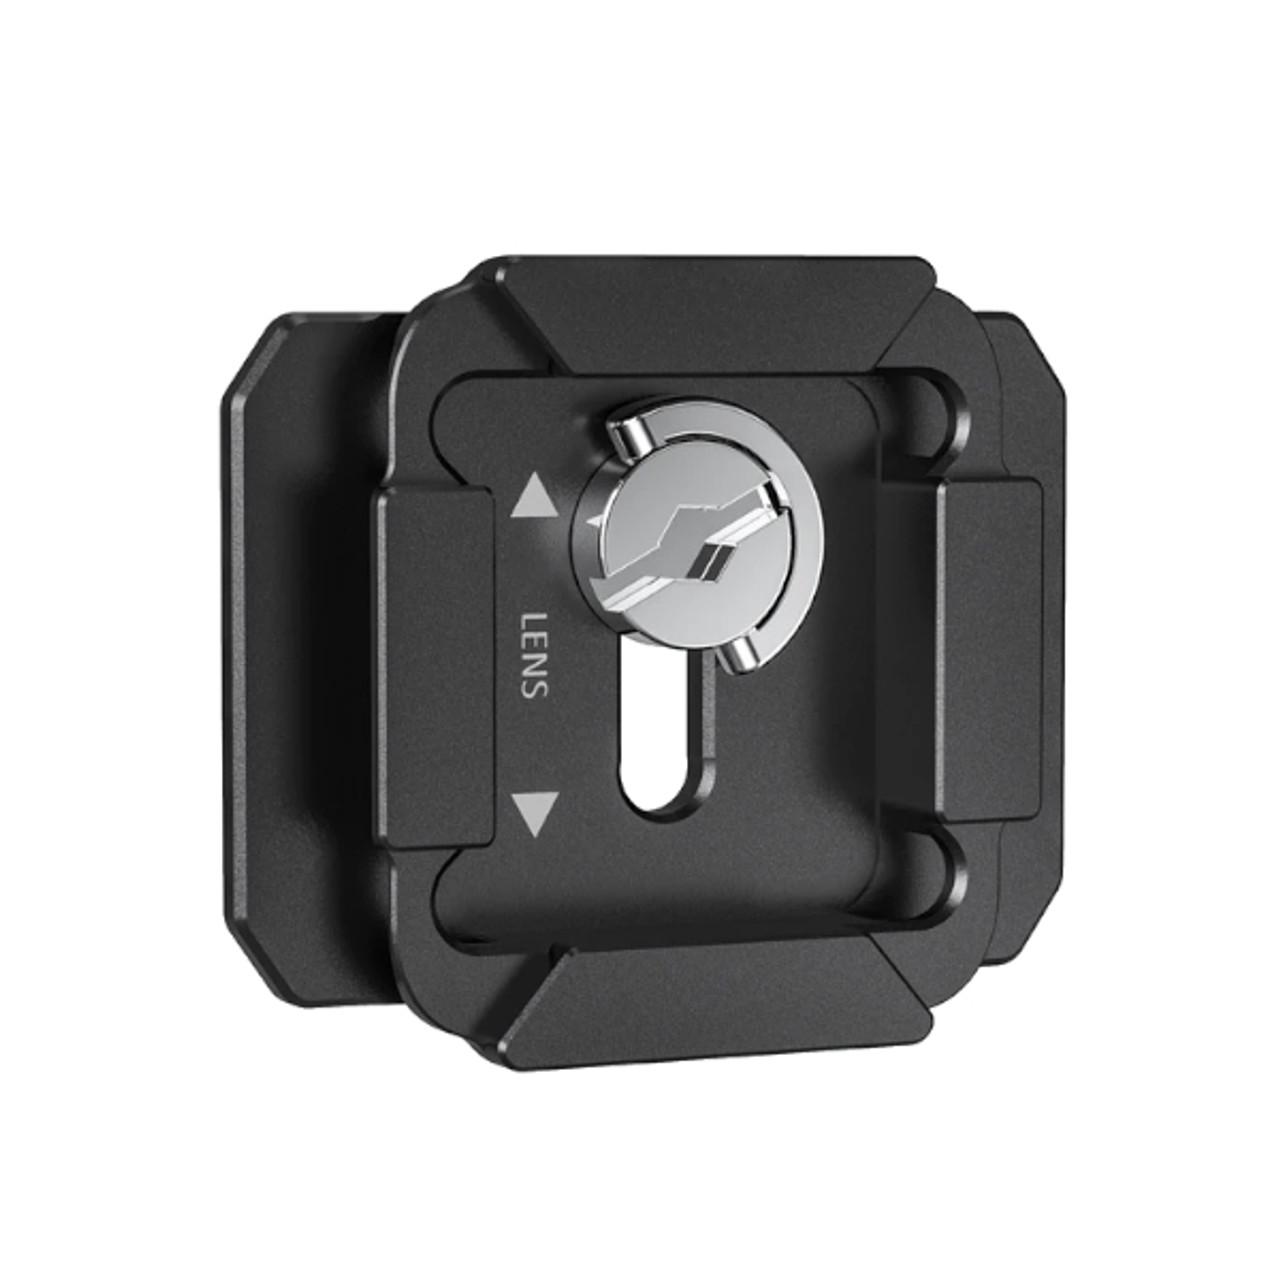 SmallRig Quick Release Plate (Arca-Swiss/Manfrotto RC2 Style)